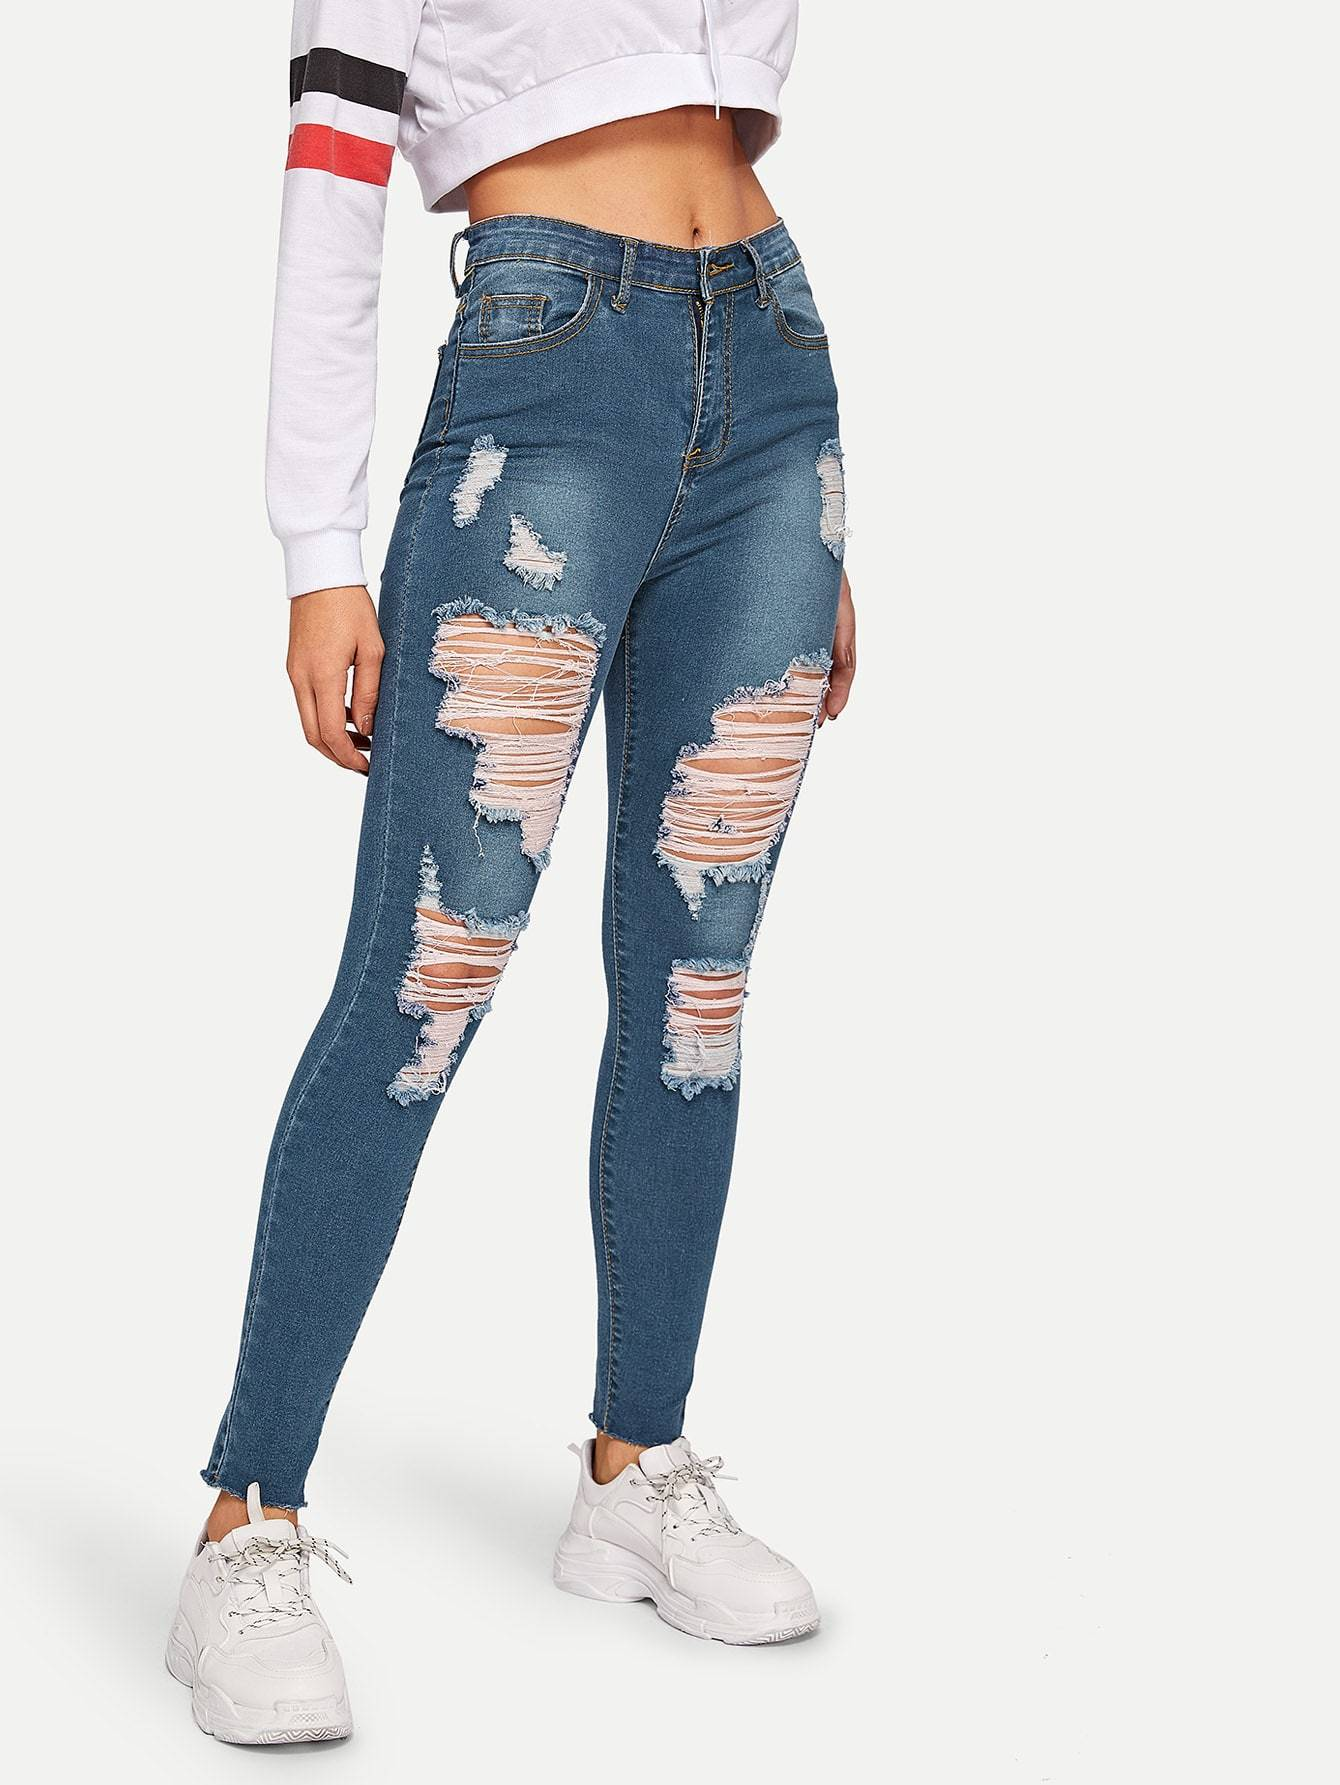 Distressed Raw Hem Skinny Jeans – Marvy Bae